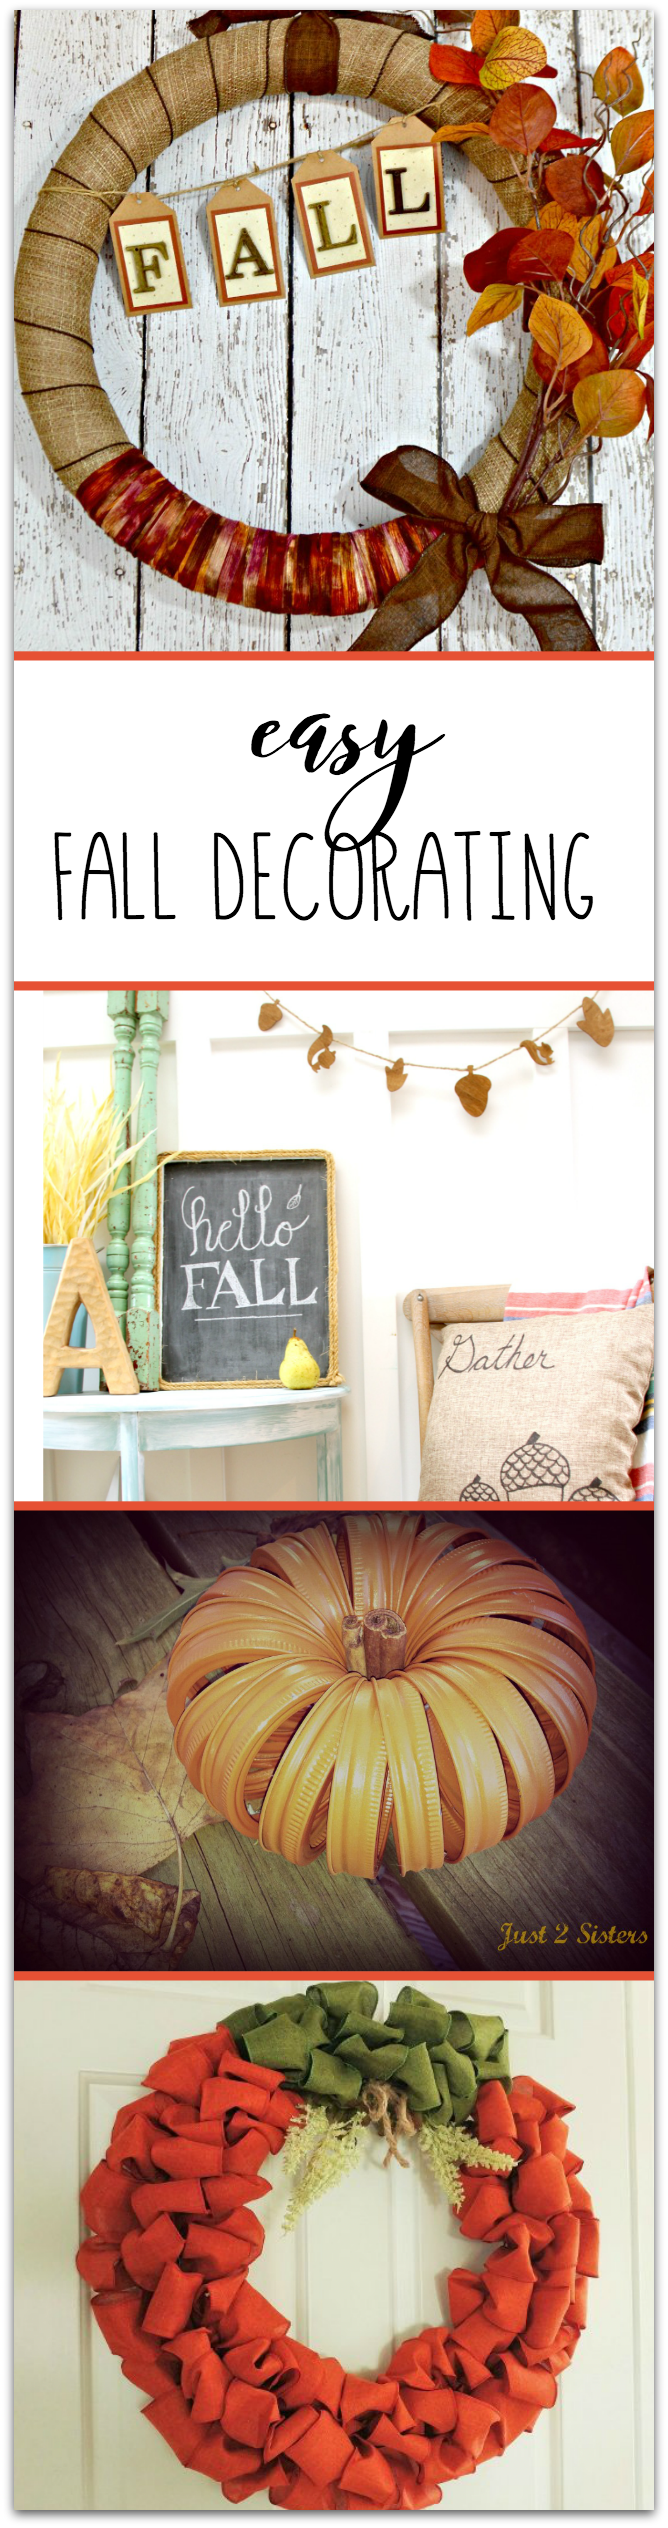 easy-fall-decorating